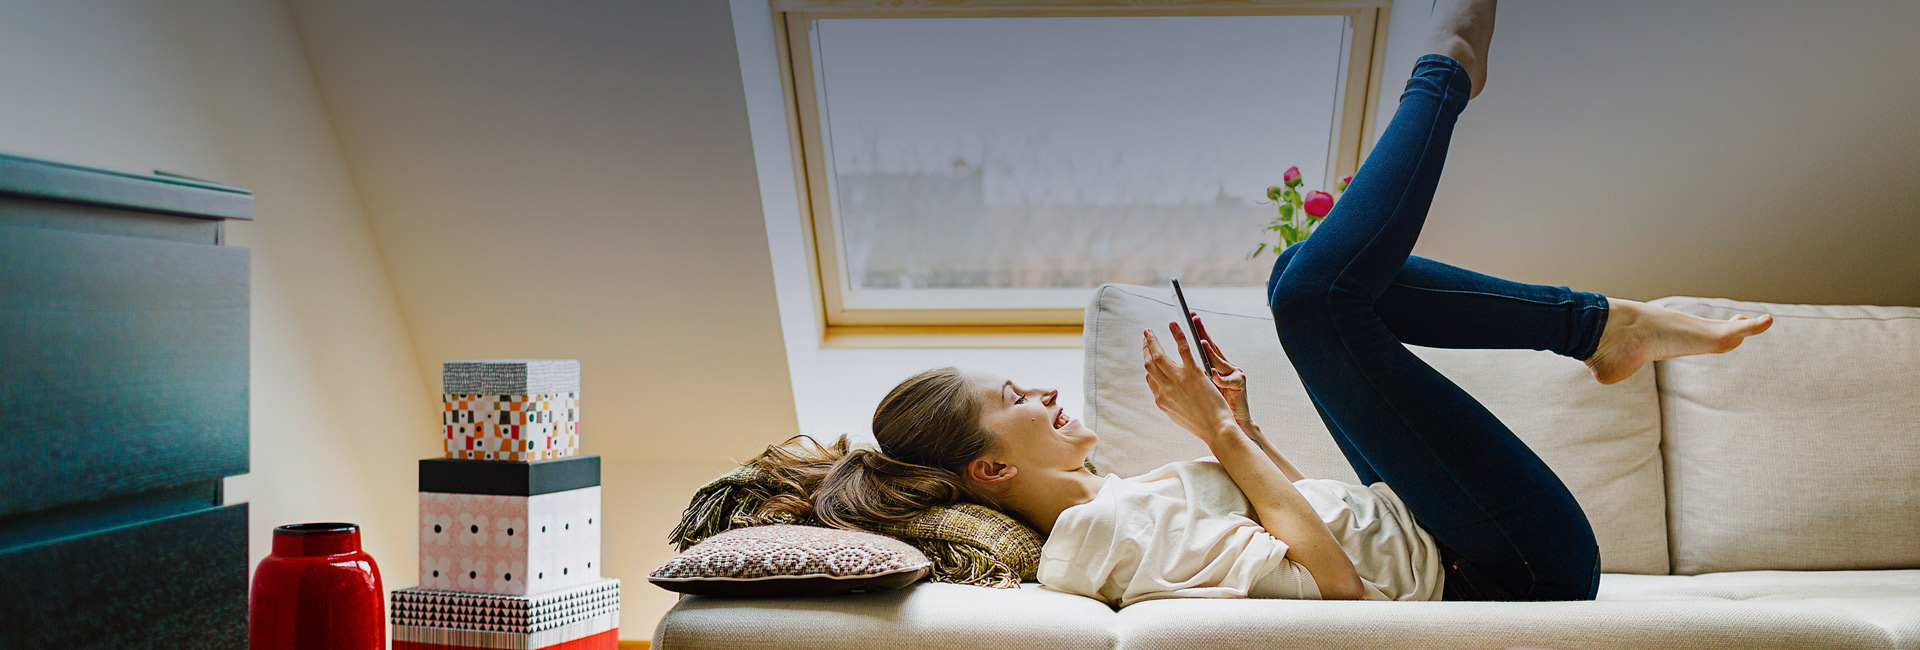 Banner Tessares: women at home on couch with tablet